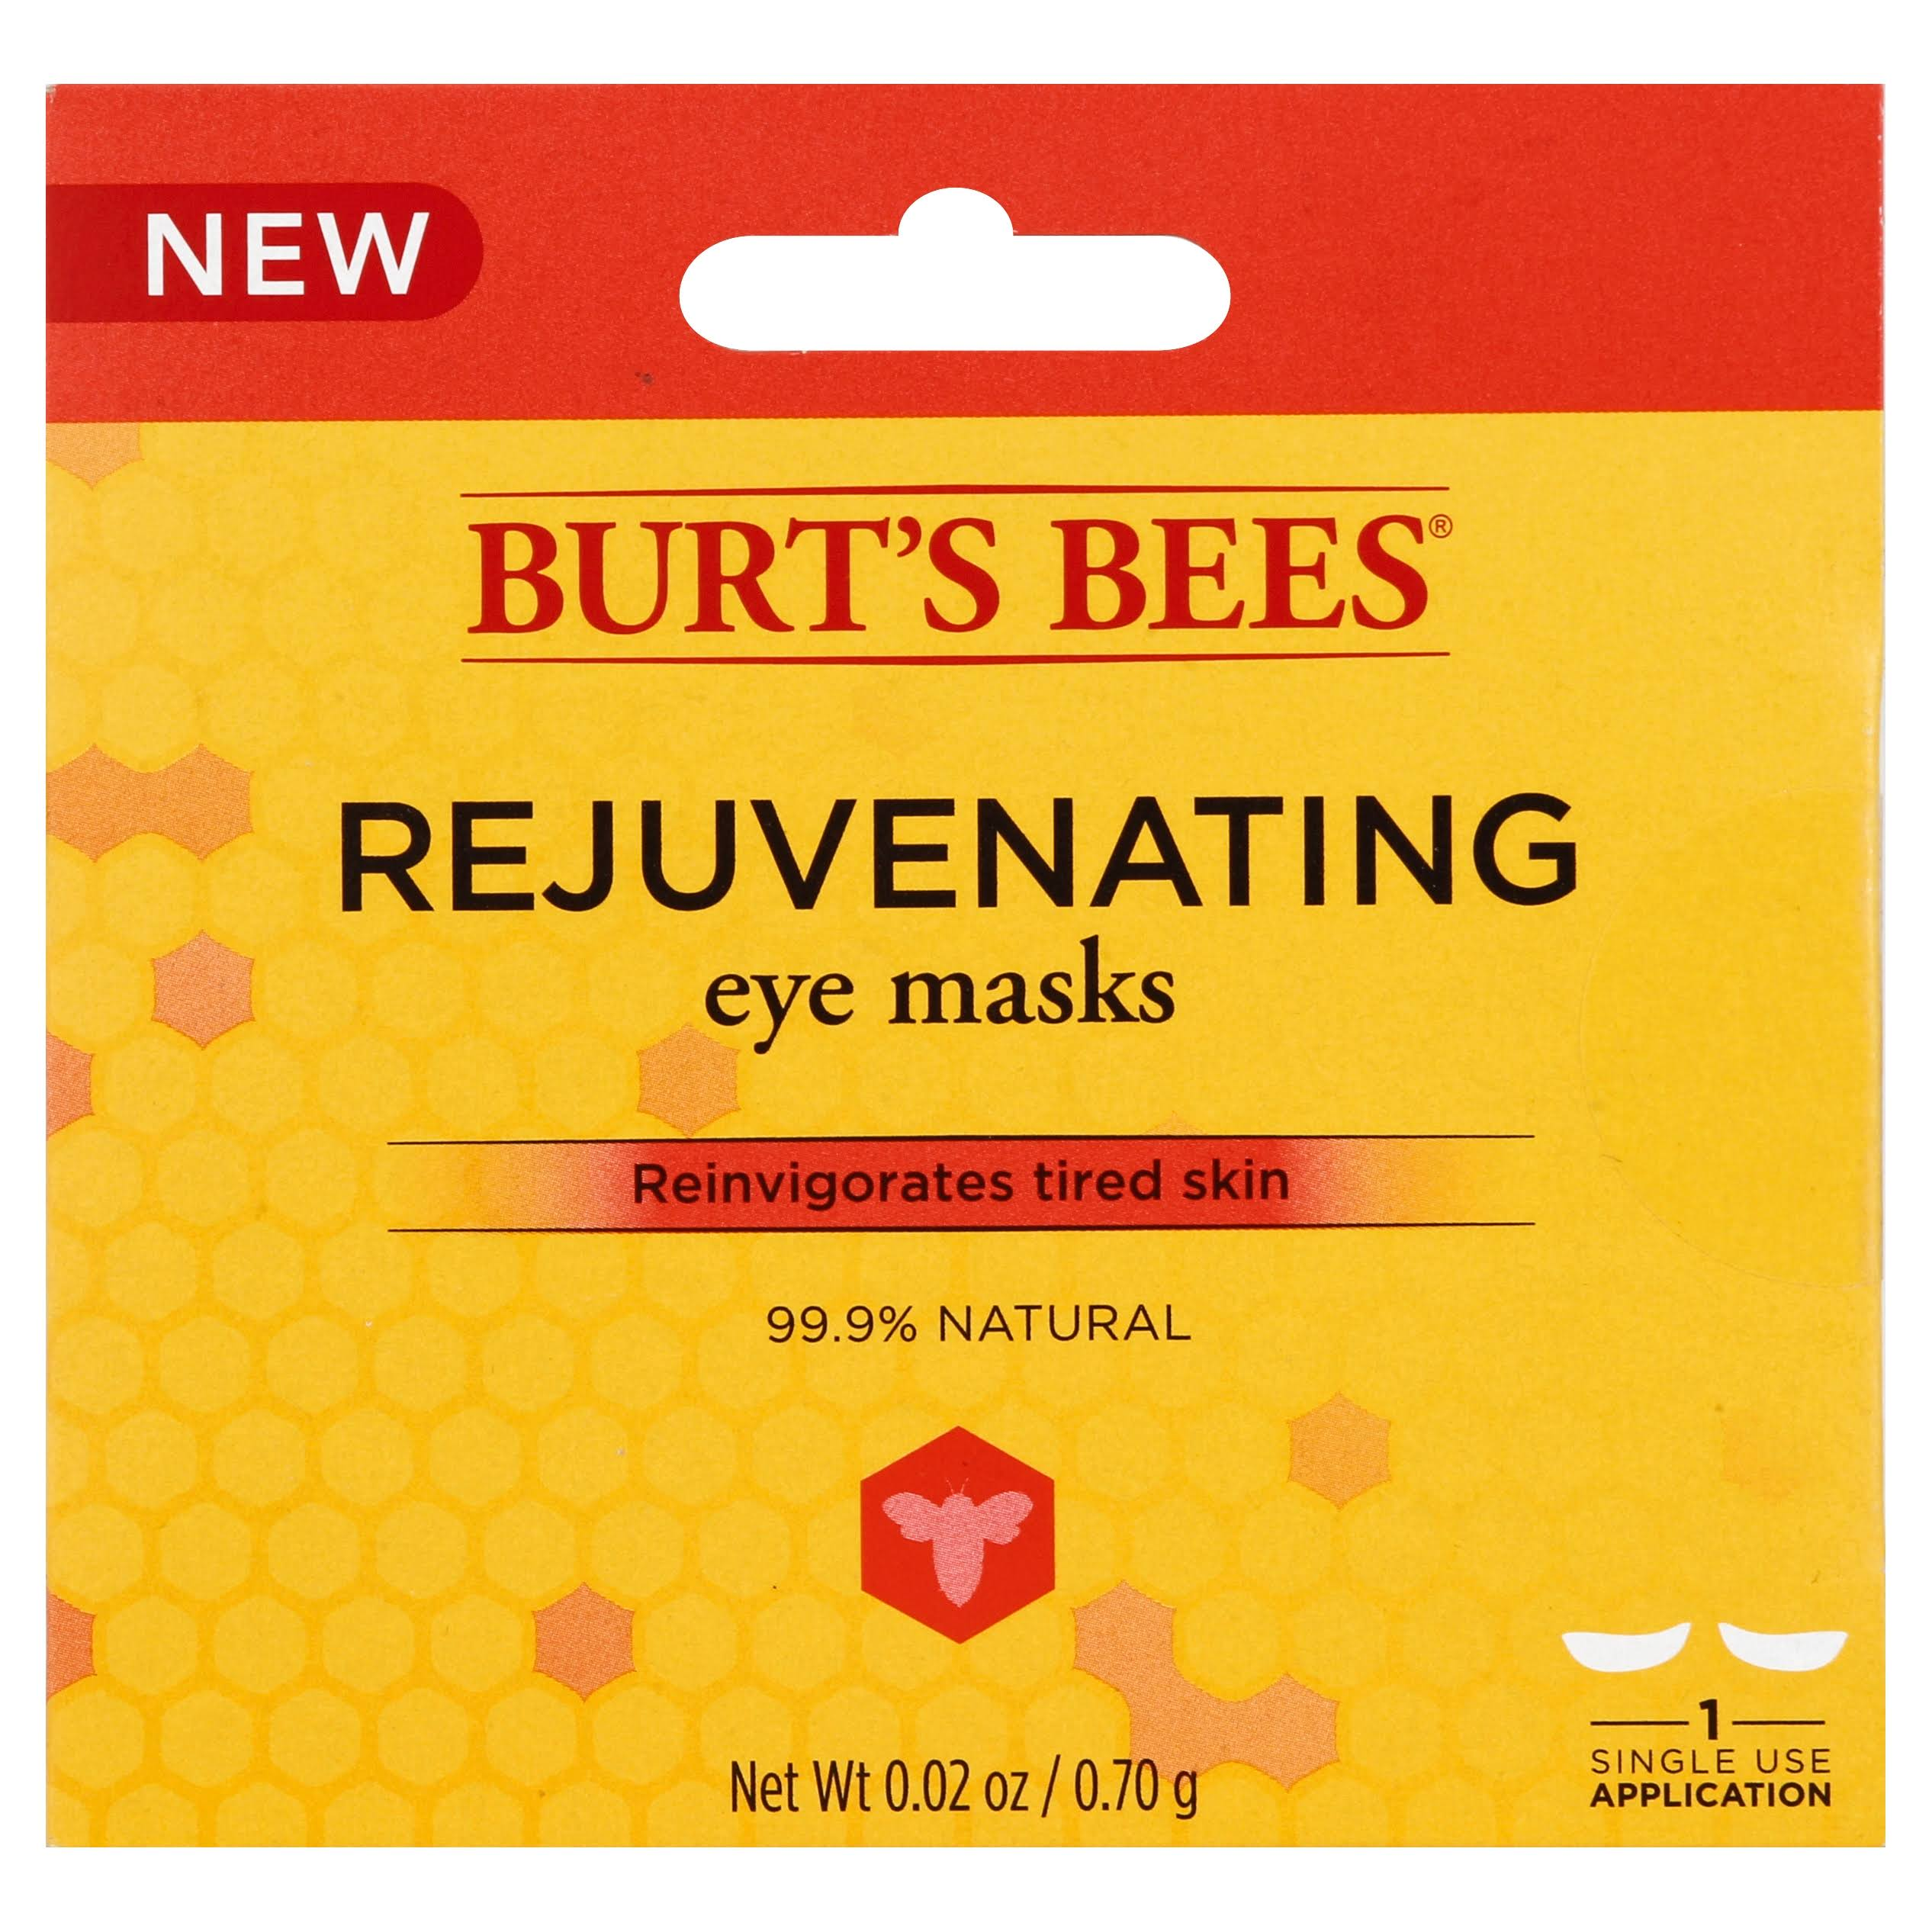 Burt's Bees Rejuvenating Eye Mask, 0.02 oz 1 Single Use